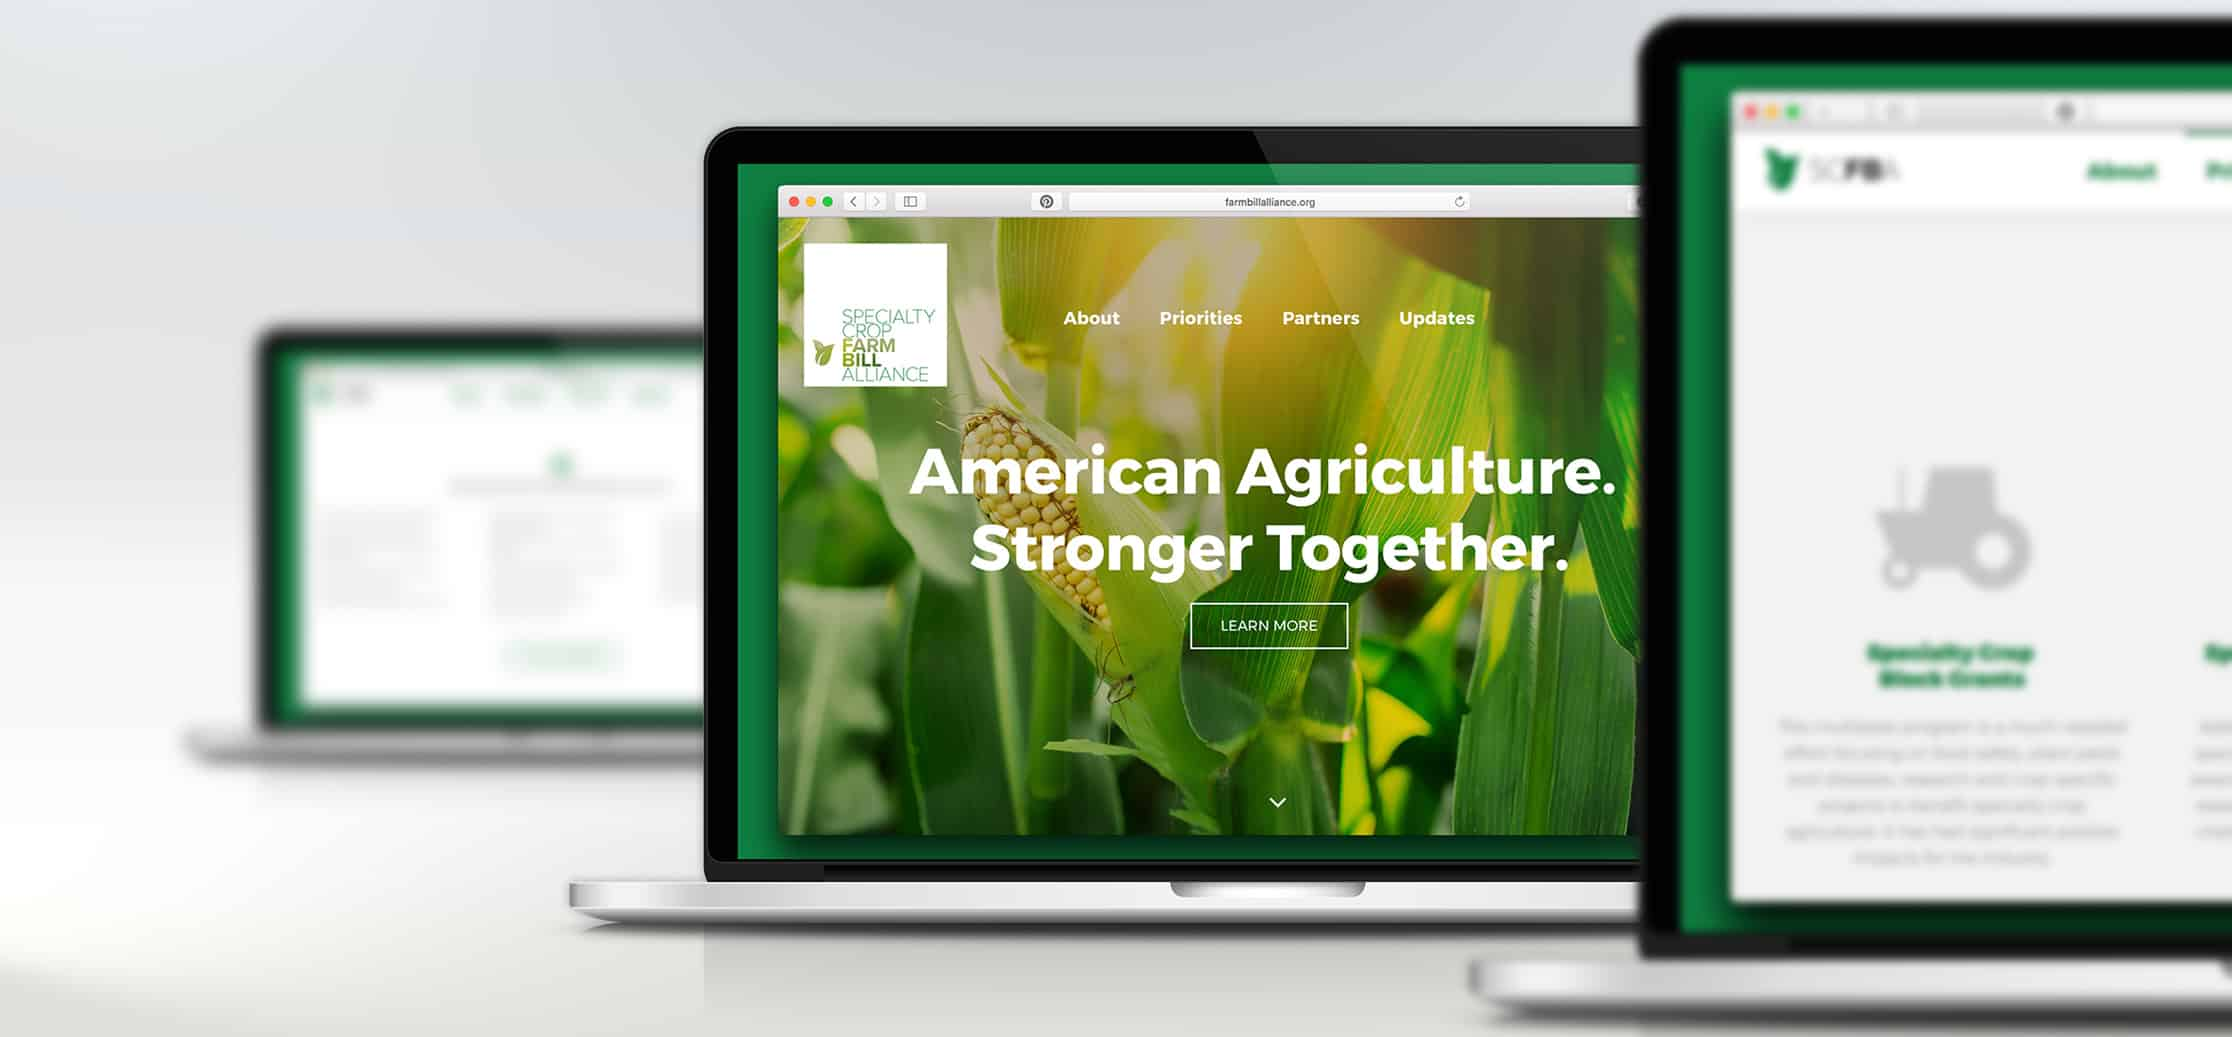 Farm Bill Alliance | Mekanic